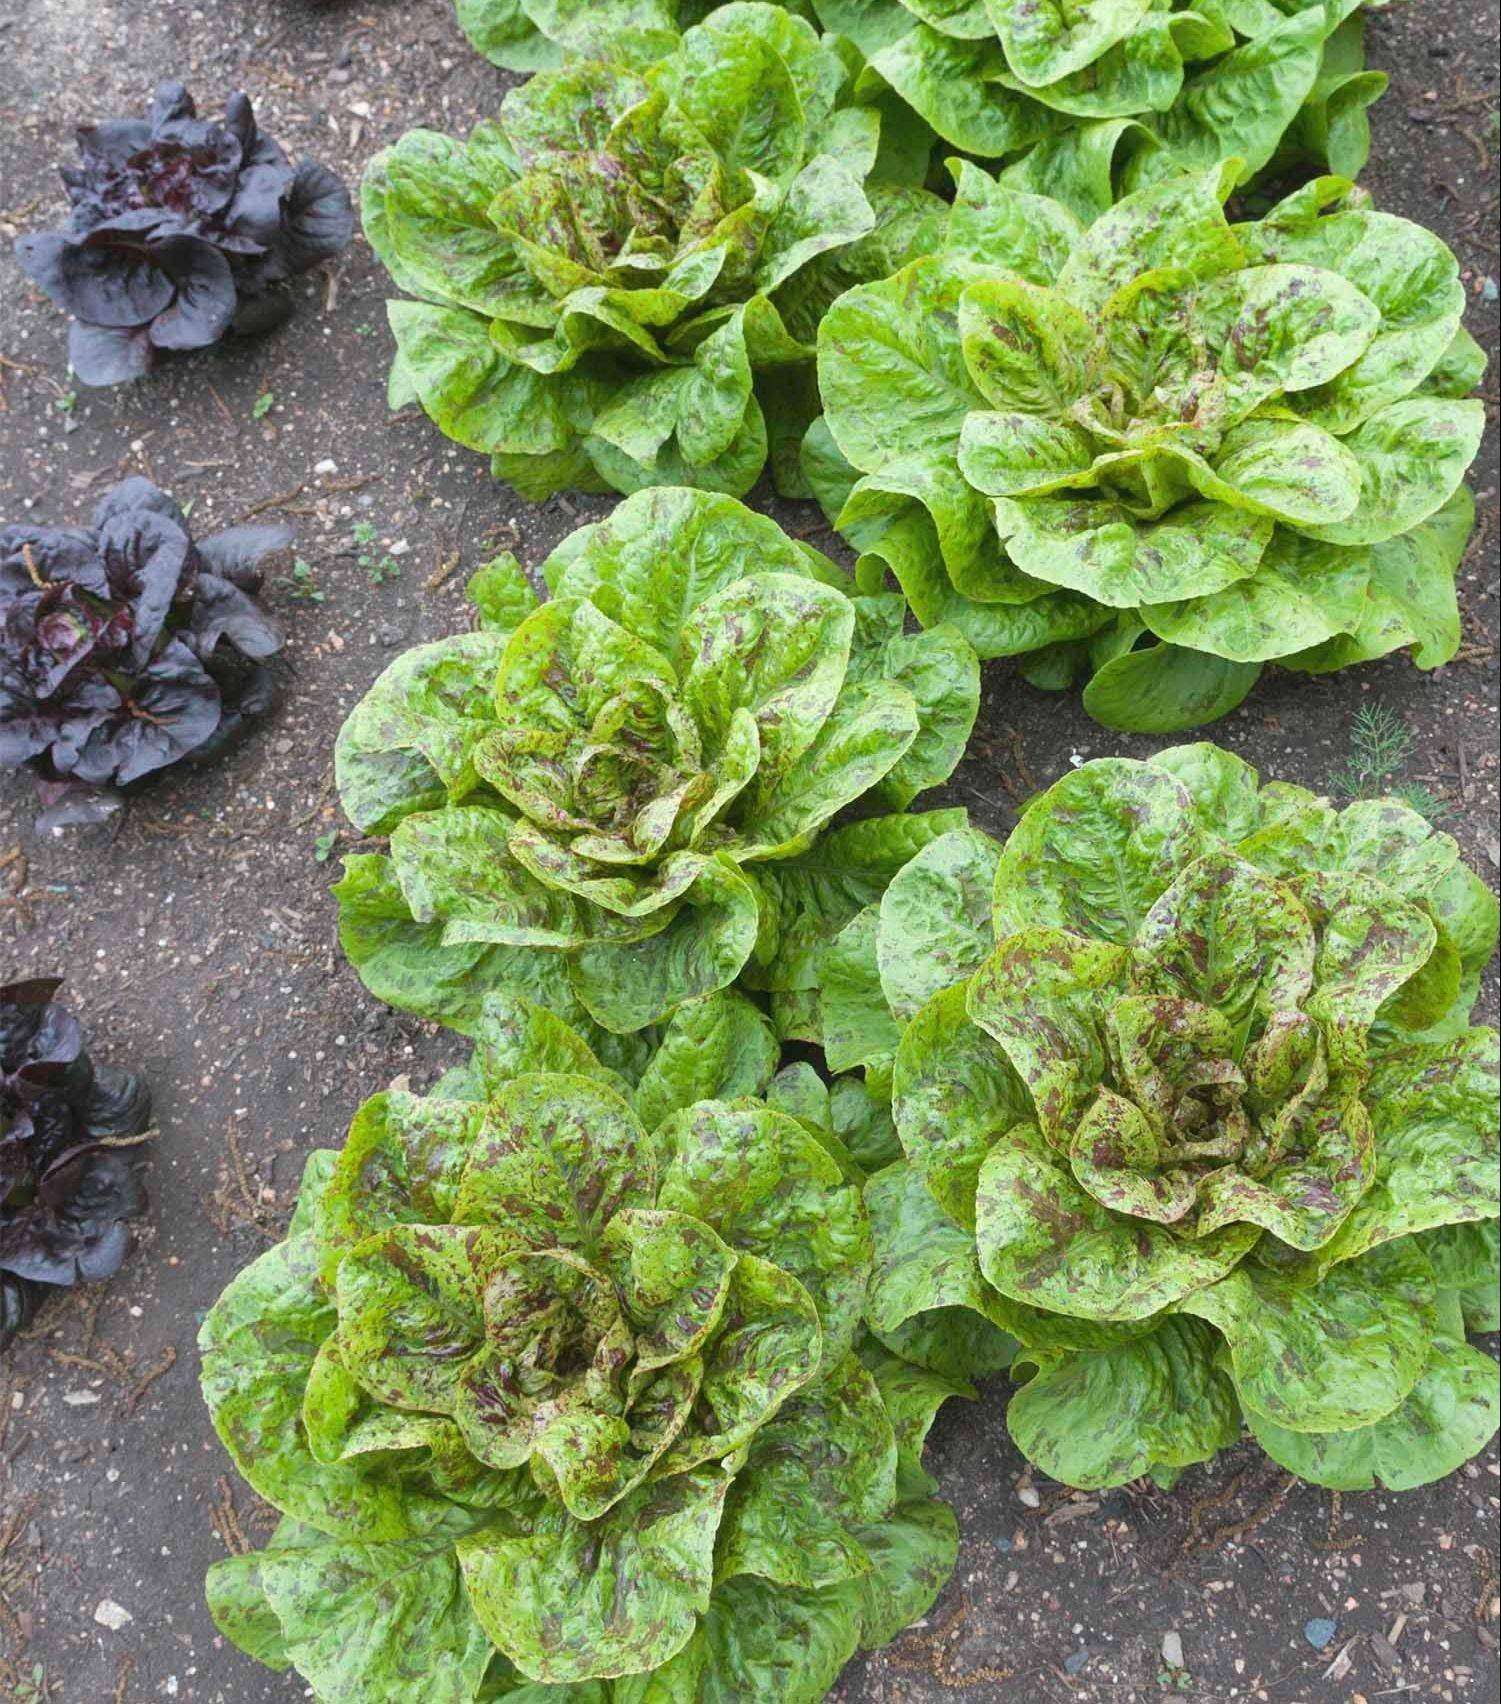 Seeds for lettuces, mesclun mixes and other greens can be sowed again this month.